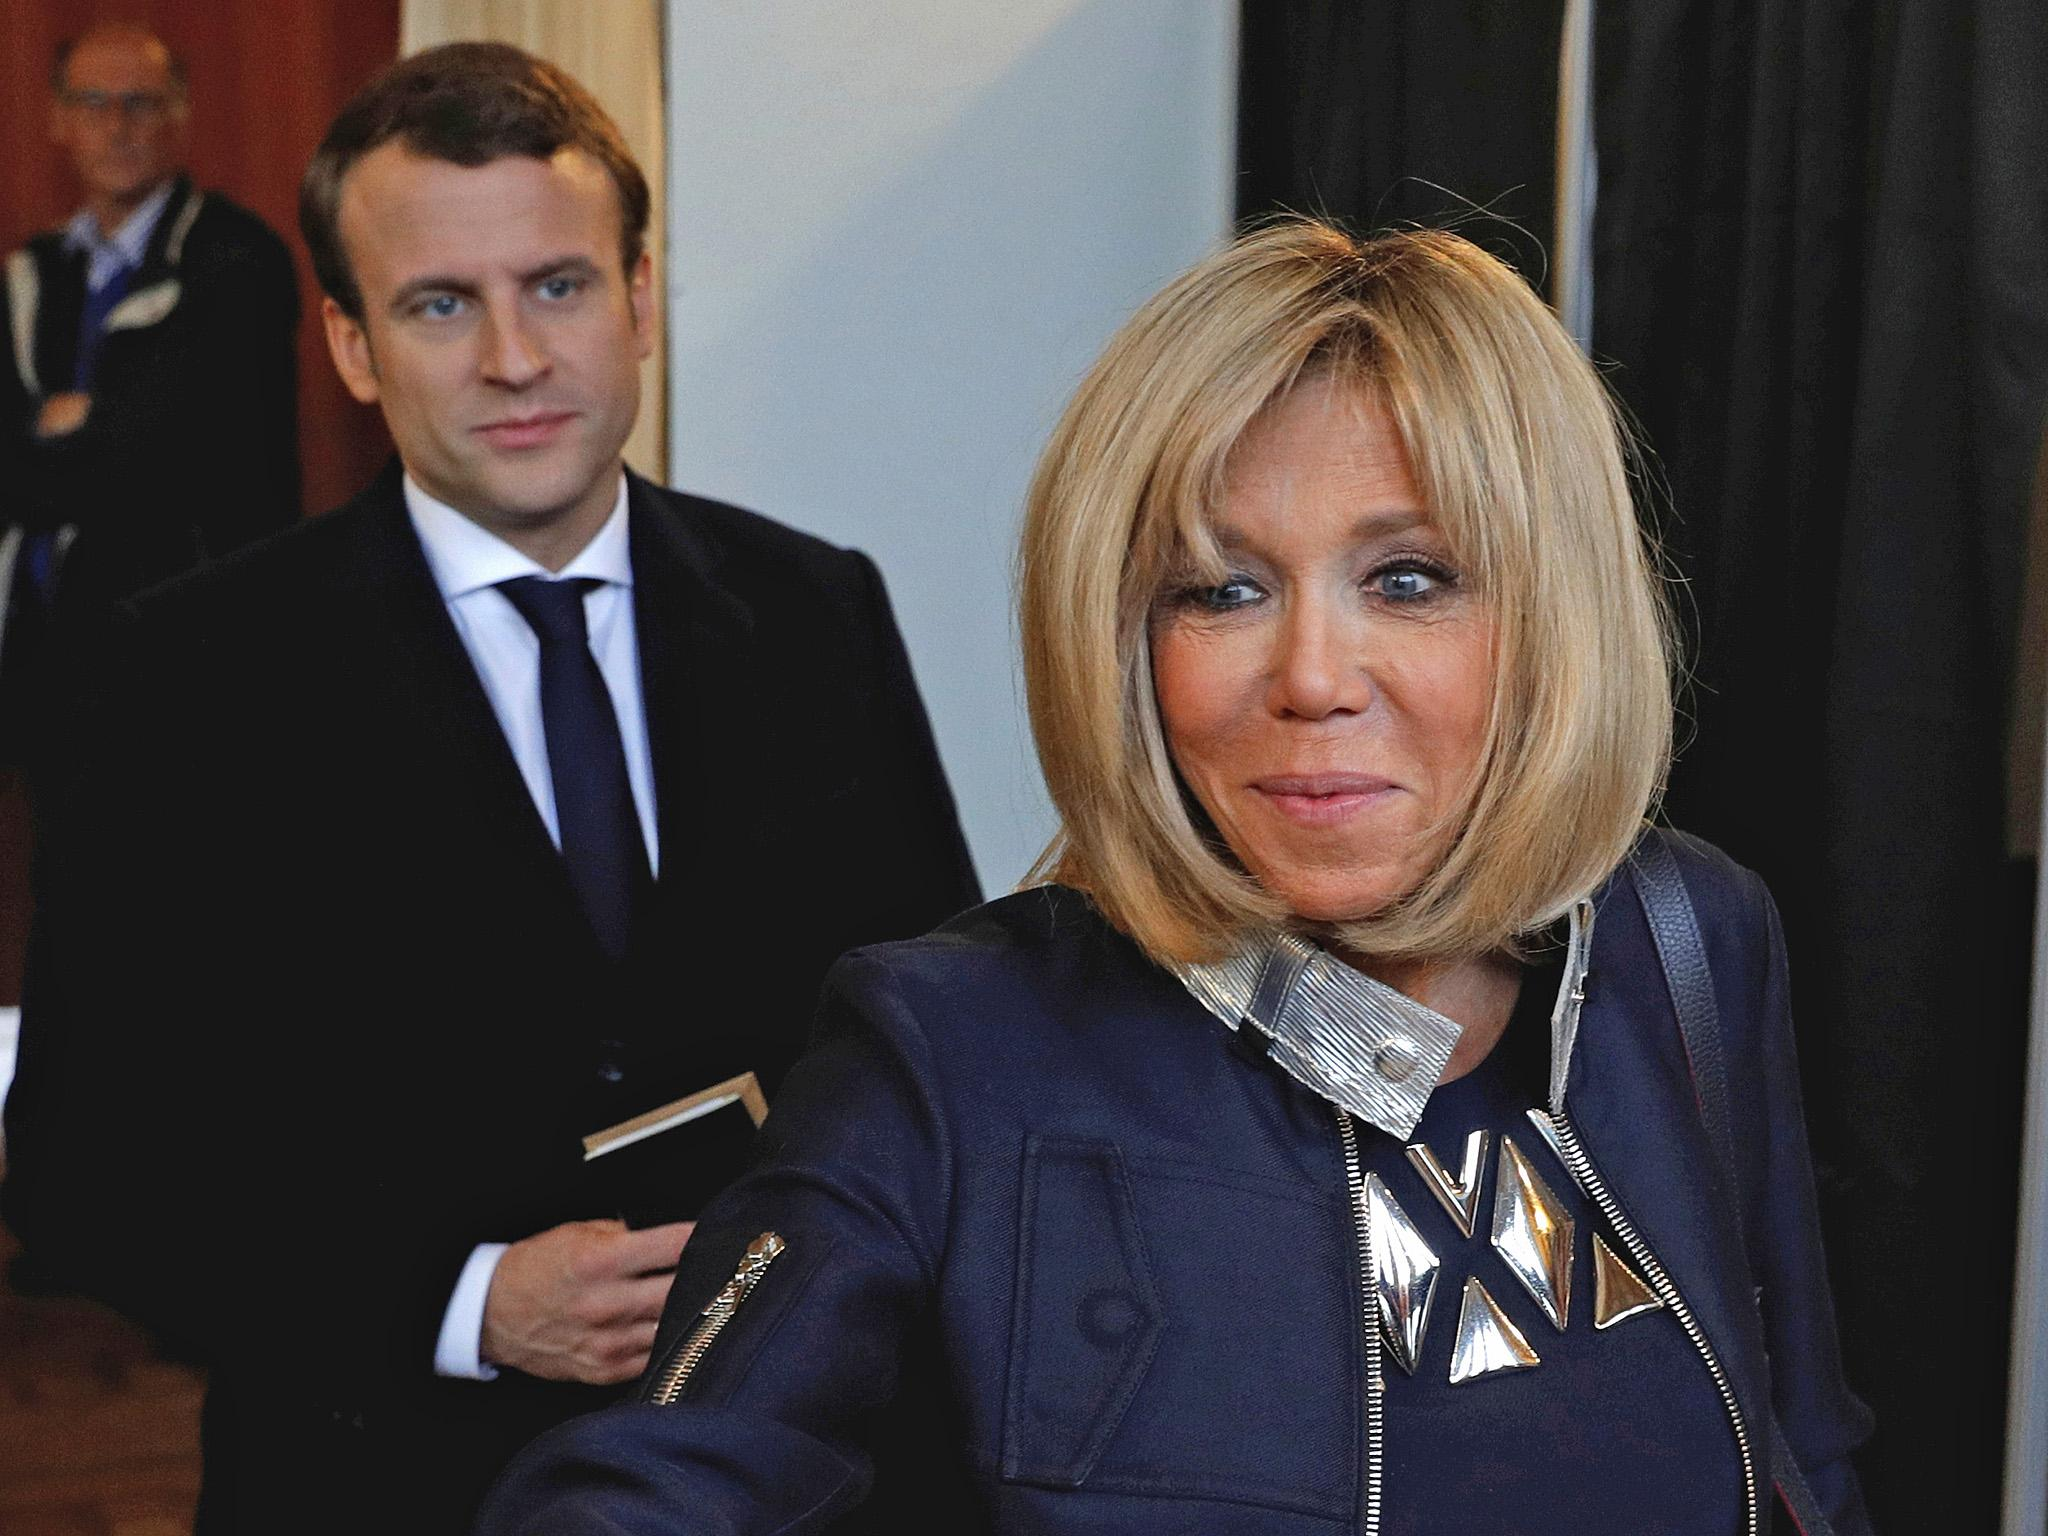 How Emmanuel Macron S Parents Discovered Their Son Was Dating His 40 Year Old Teacher The Independent The Independent